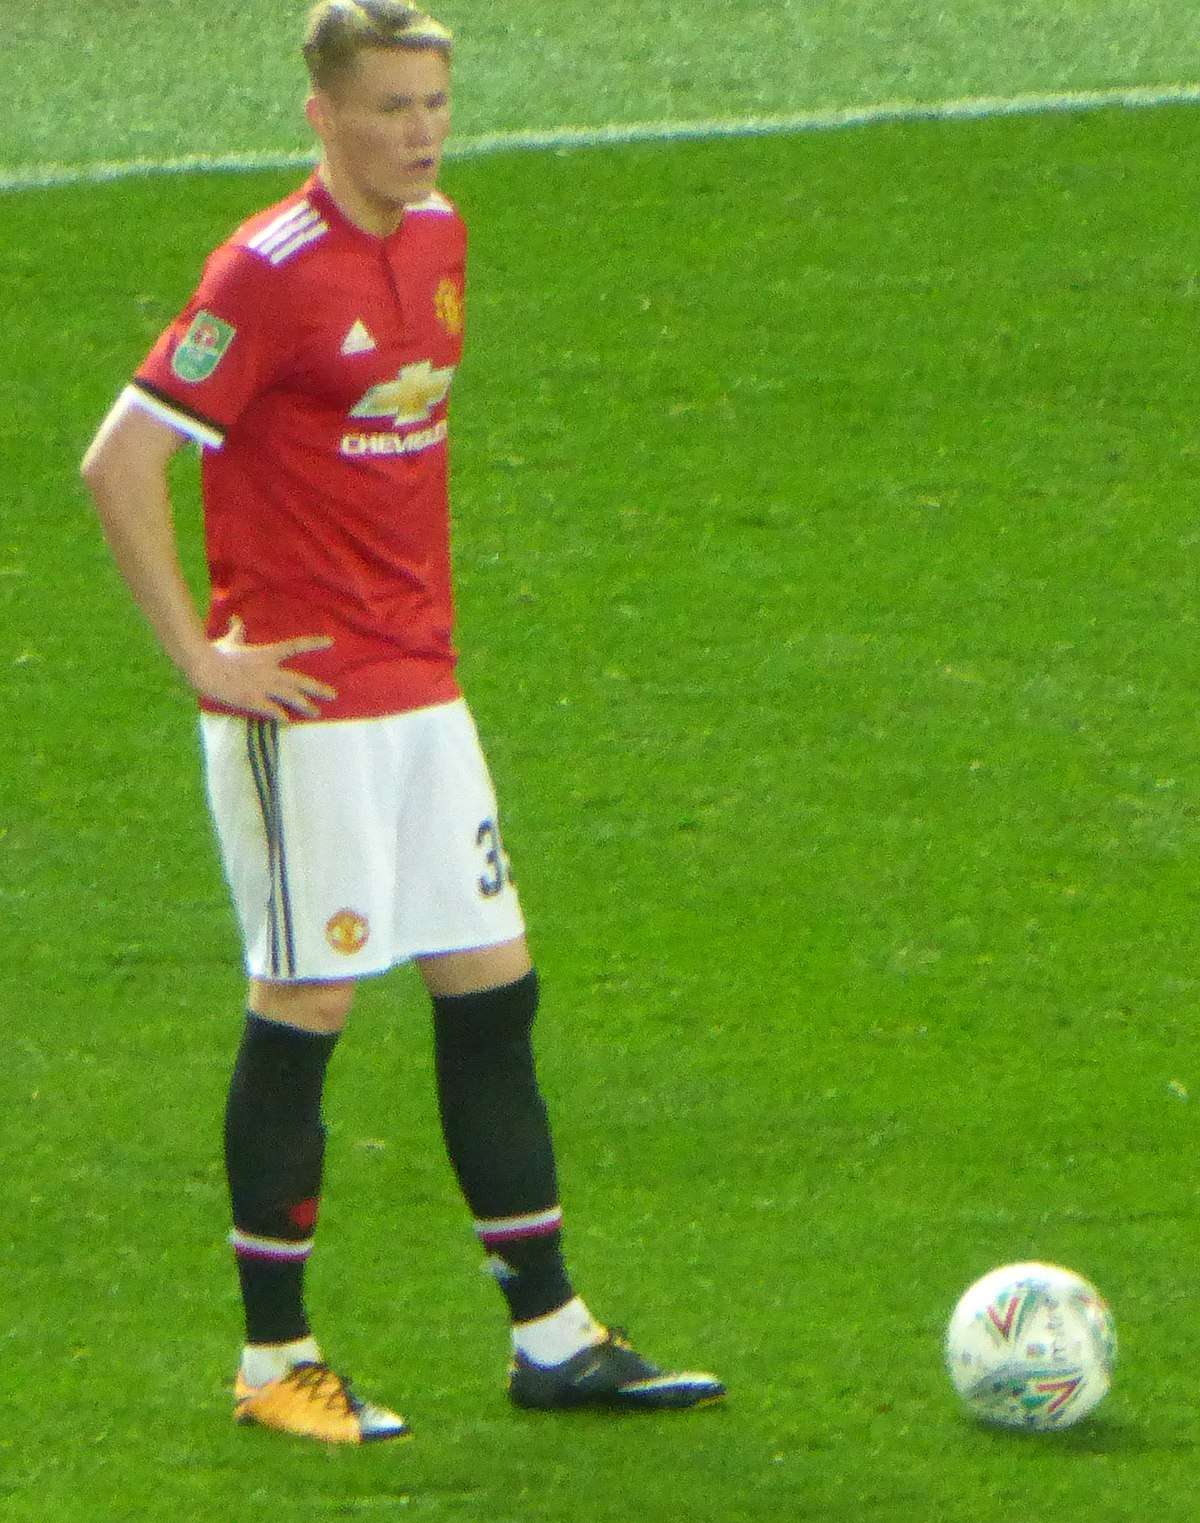 df14e86969d Scott McTominay - Wikipedia